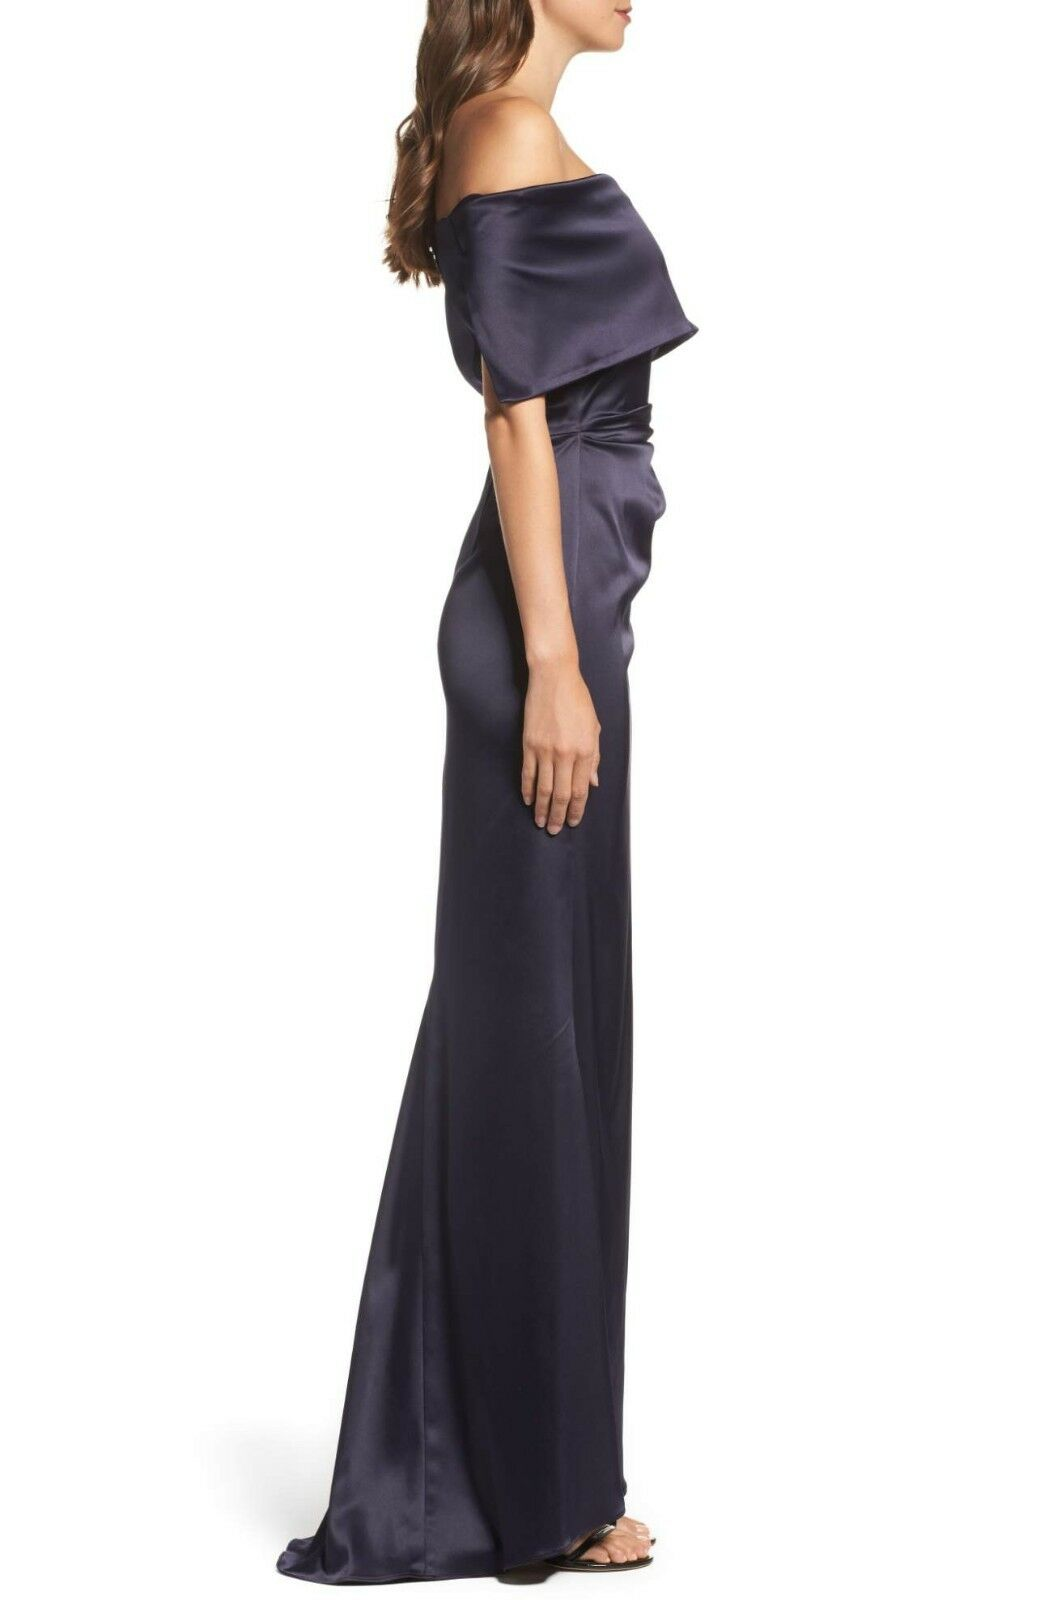 NEW VINCE VINCE VINCE CAMUTO Navy bluee Satin Off Shoulder Ruched Fold Over Fishtail Gown 4 731b99